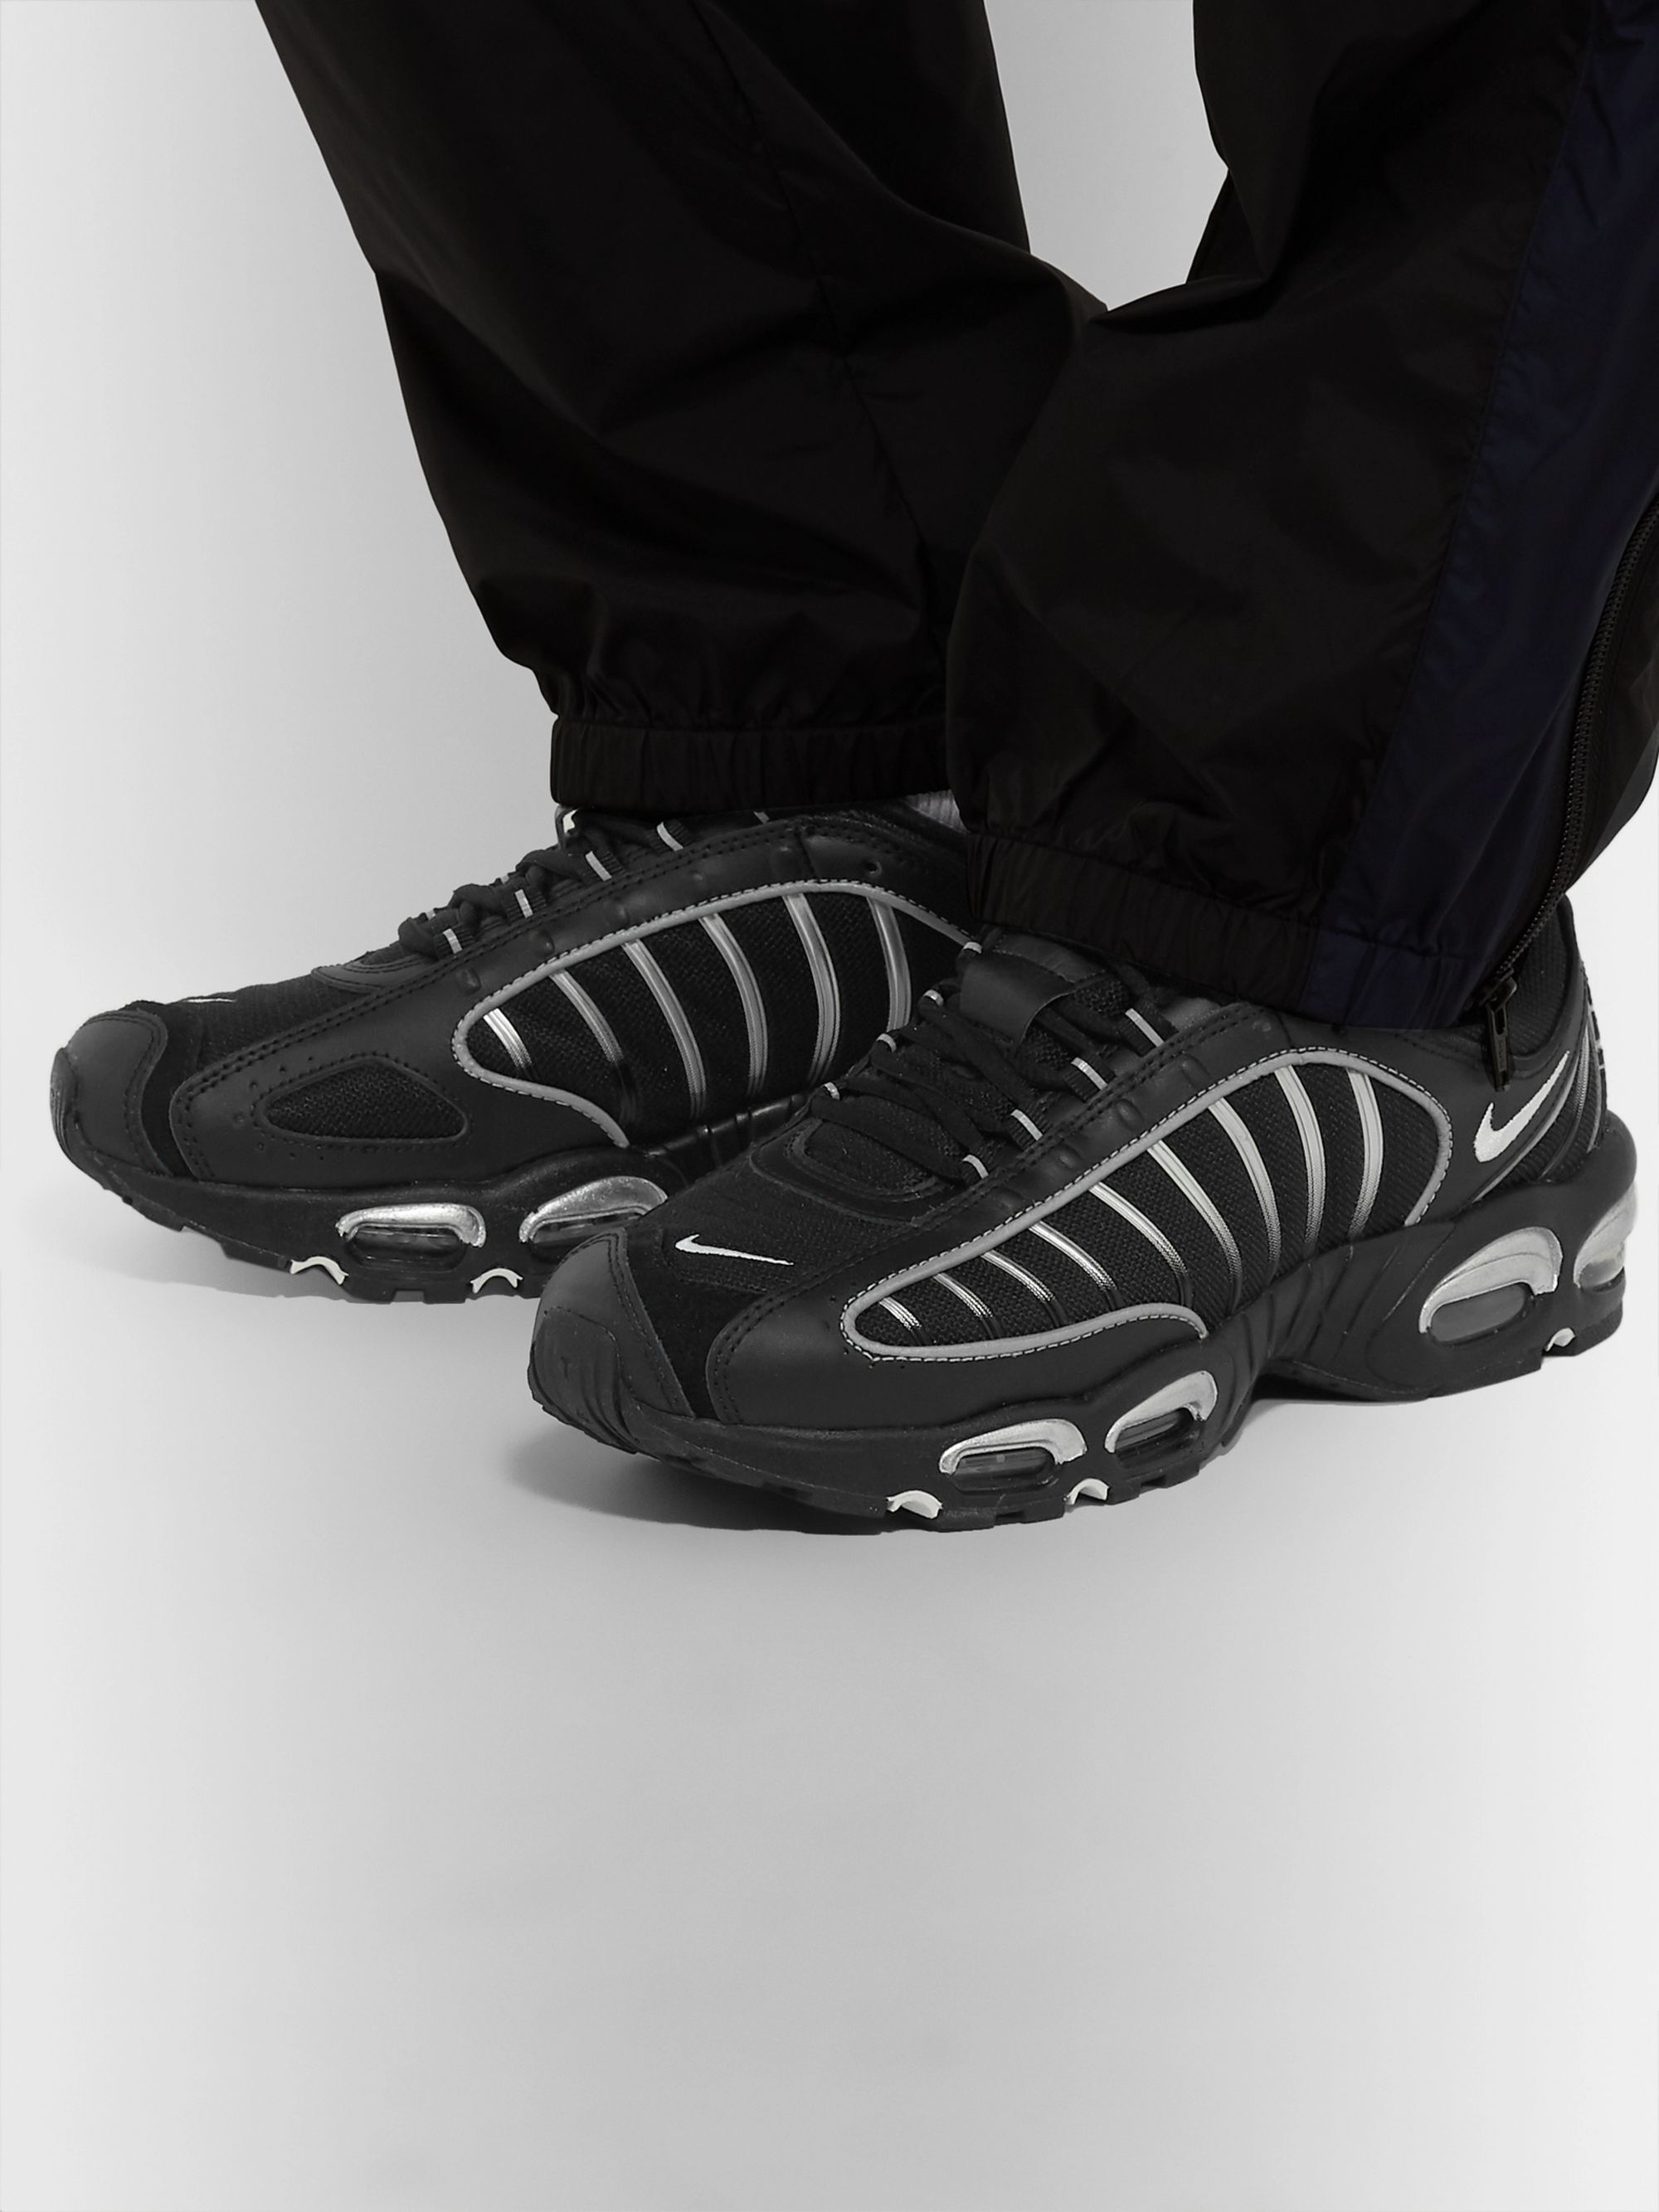 Nike Air Max Tailwind IV Mesh and Leather Sneakers